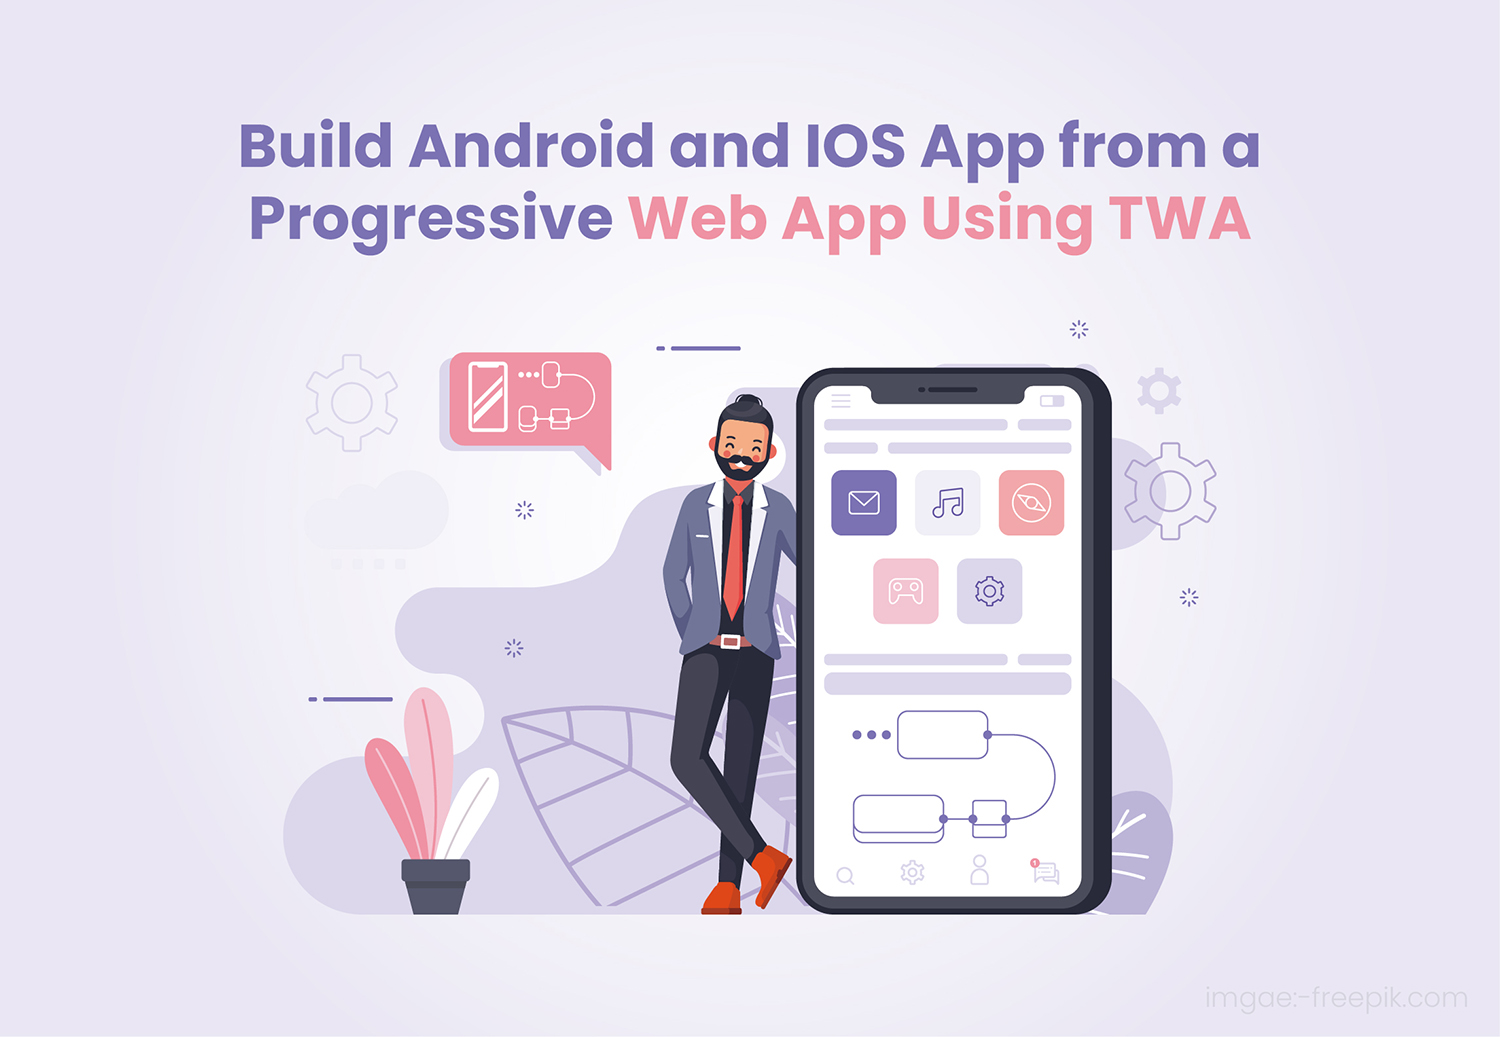 Build Android and IOS App from a Progressive Web App Using TWA